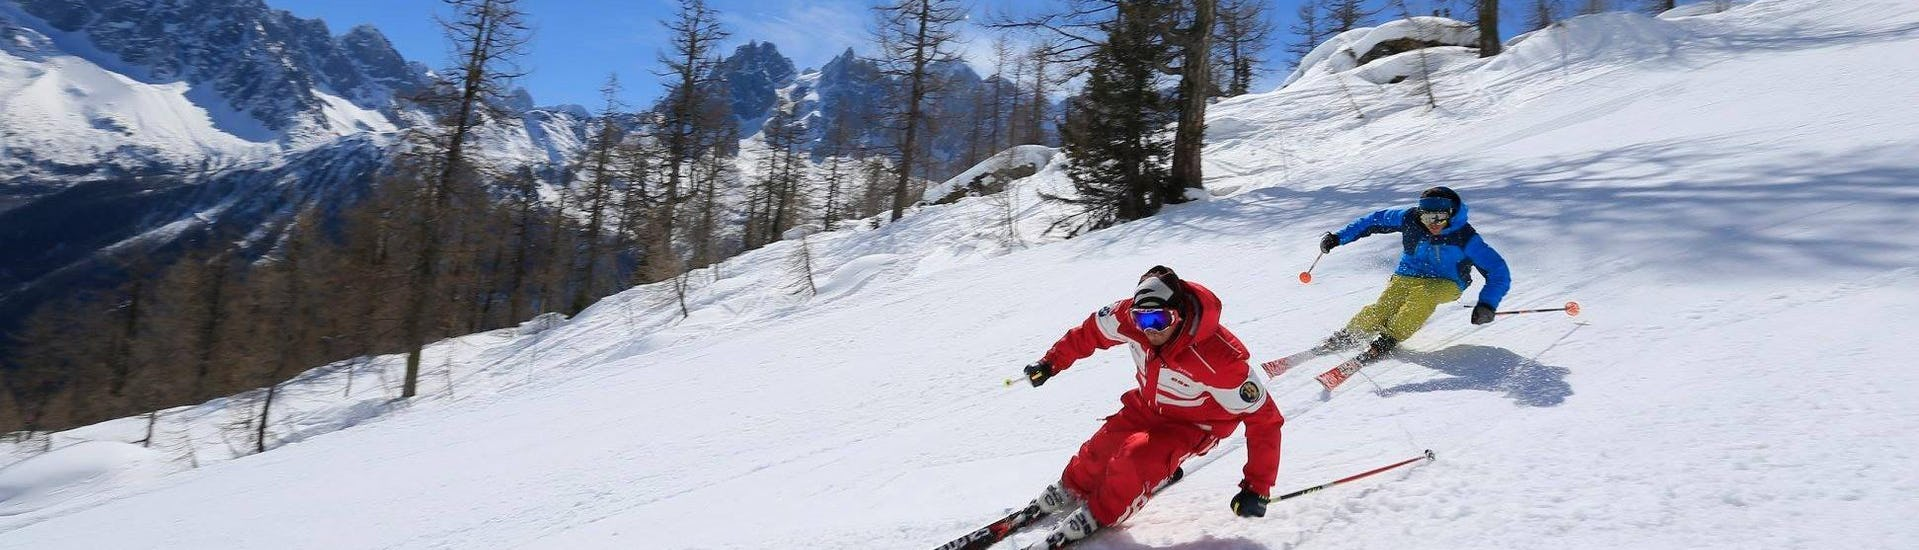 ski-lessons-for-adults-all-levels-esf-chamonix-hero